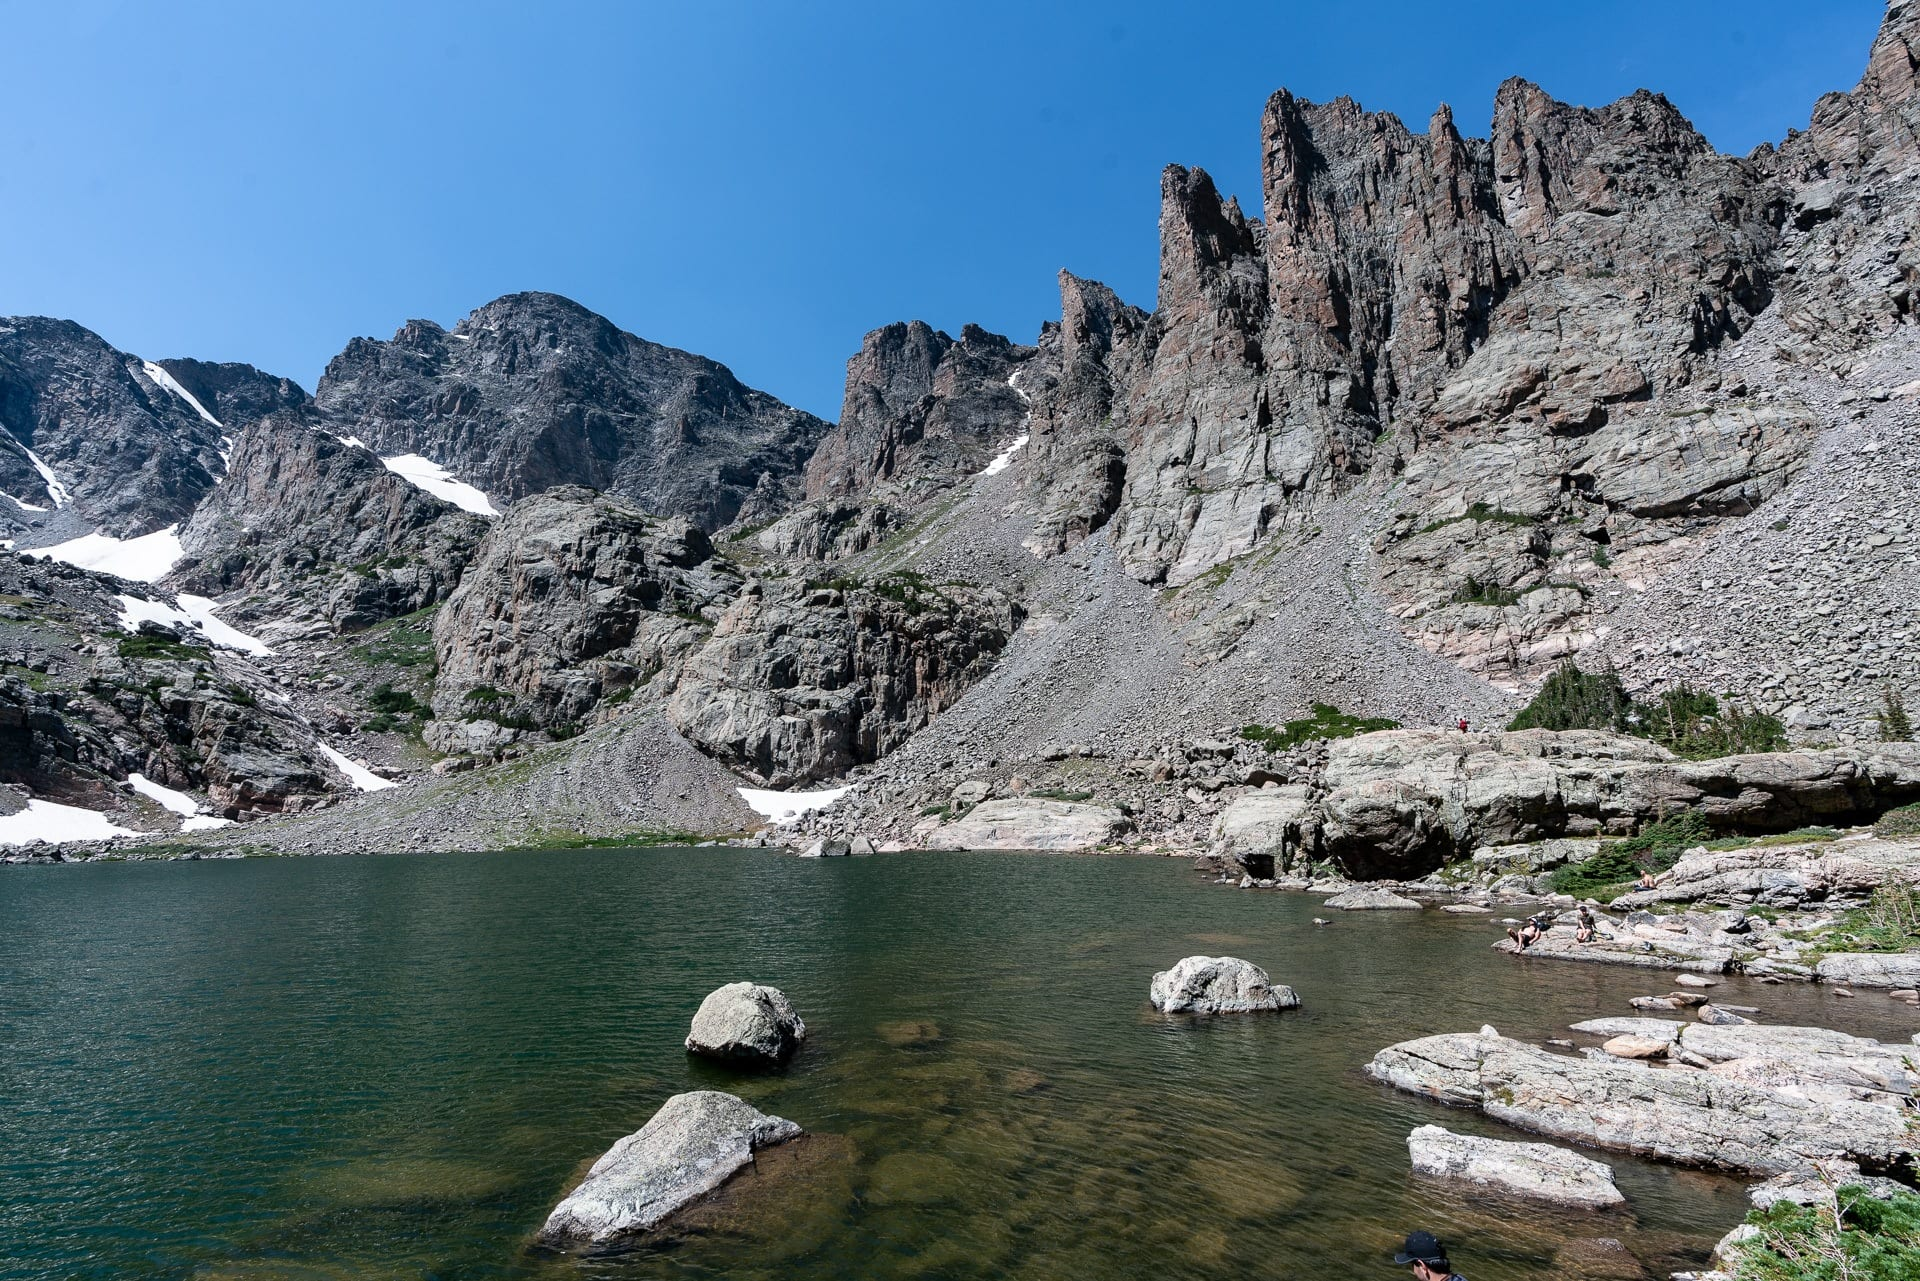 Sky Pond Trail // Get our guide to the best day hikes in Rocky Mountain National Park including distances, trail descriptions, what to be prepared for, and more.